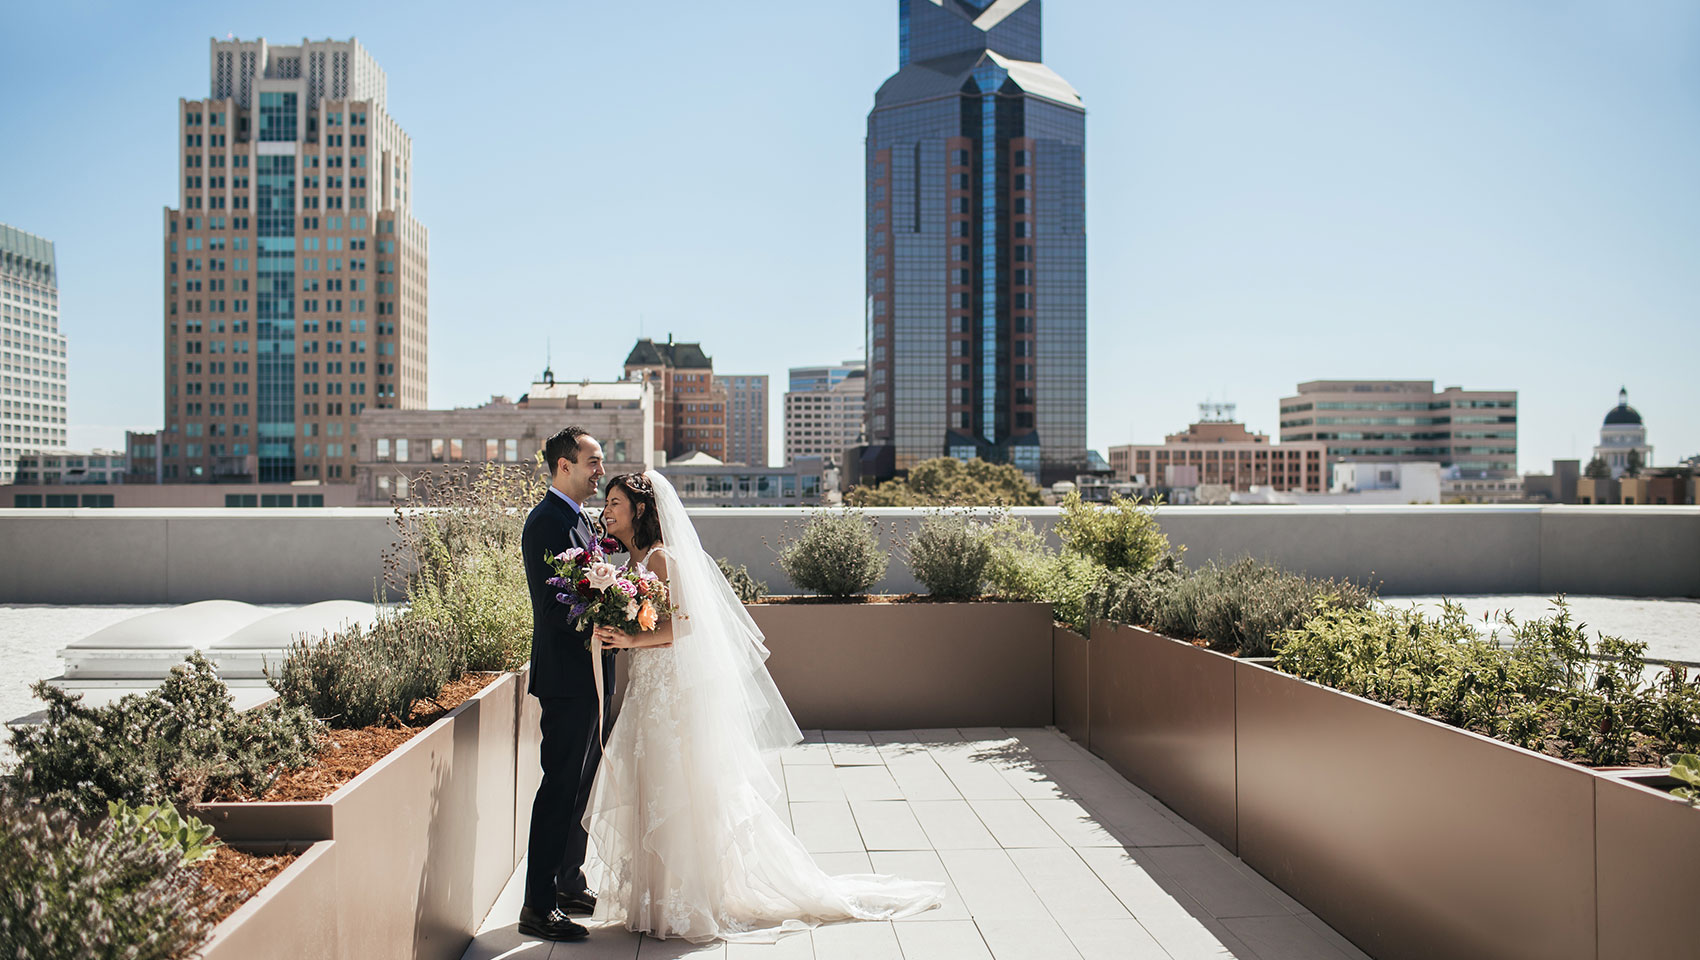 Bride & Groom on the Rooftop